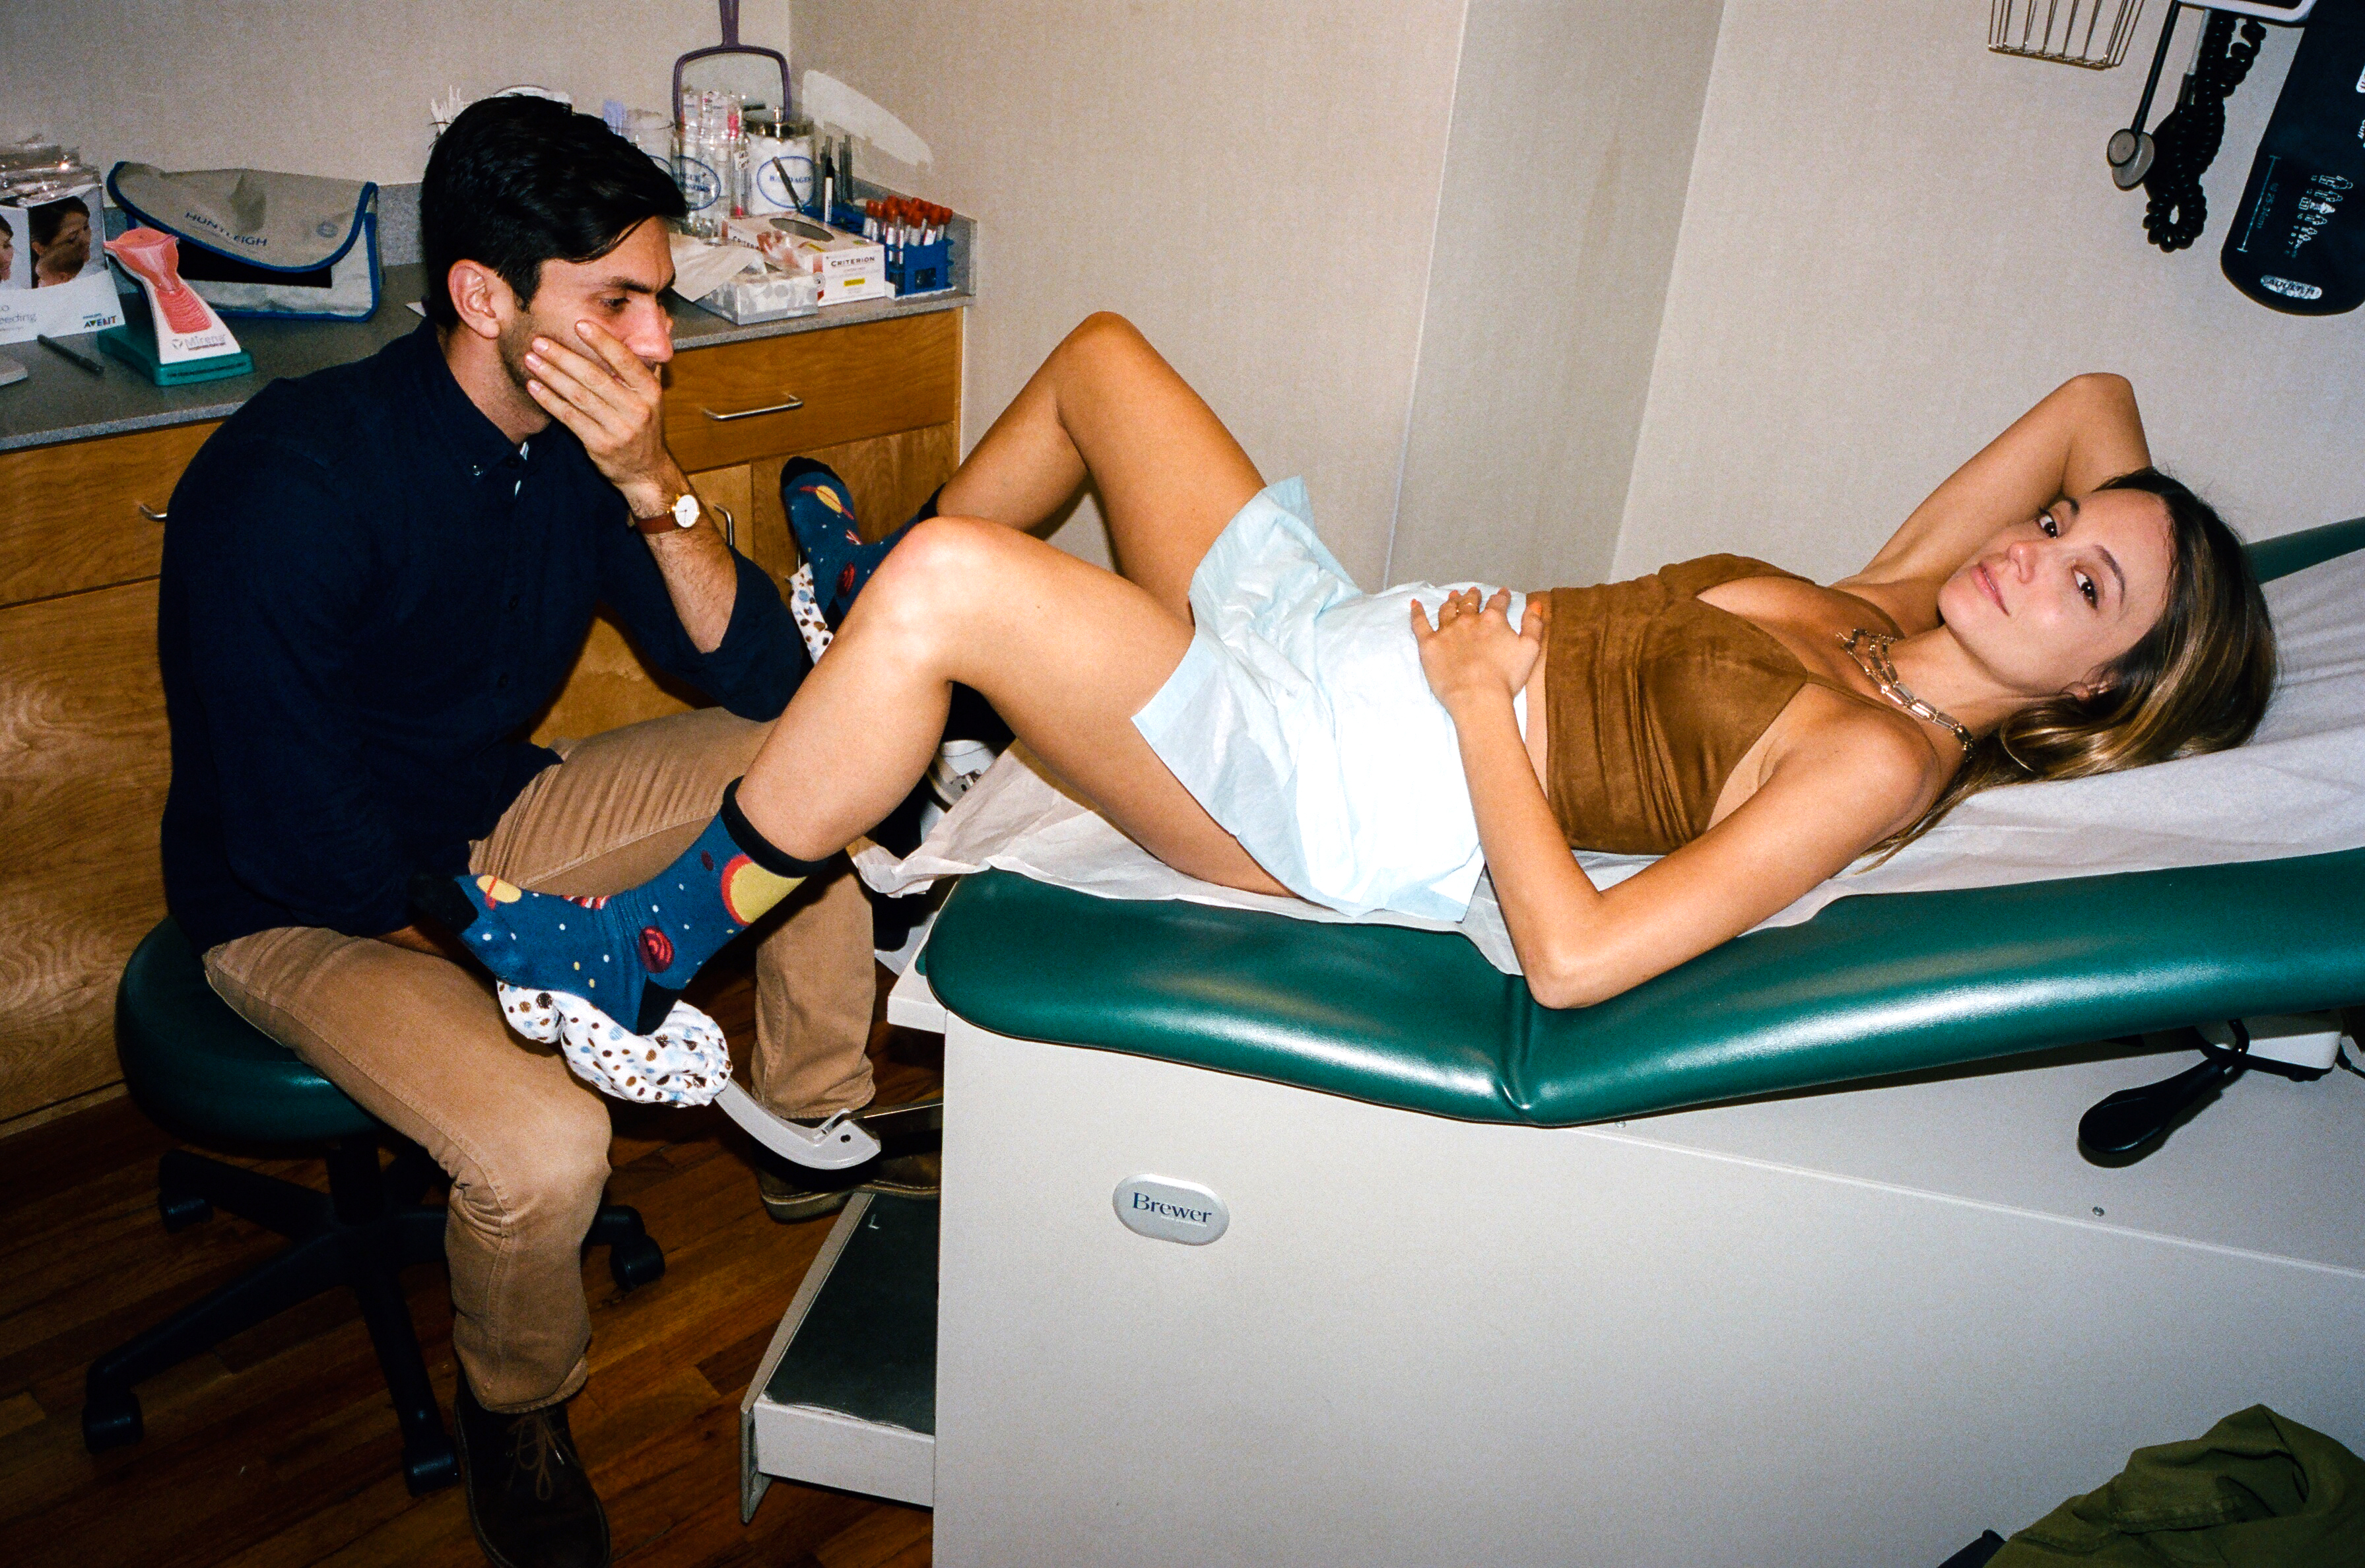 laura-perlongo-and-nev-schulman-fooling-around-at-doctor